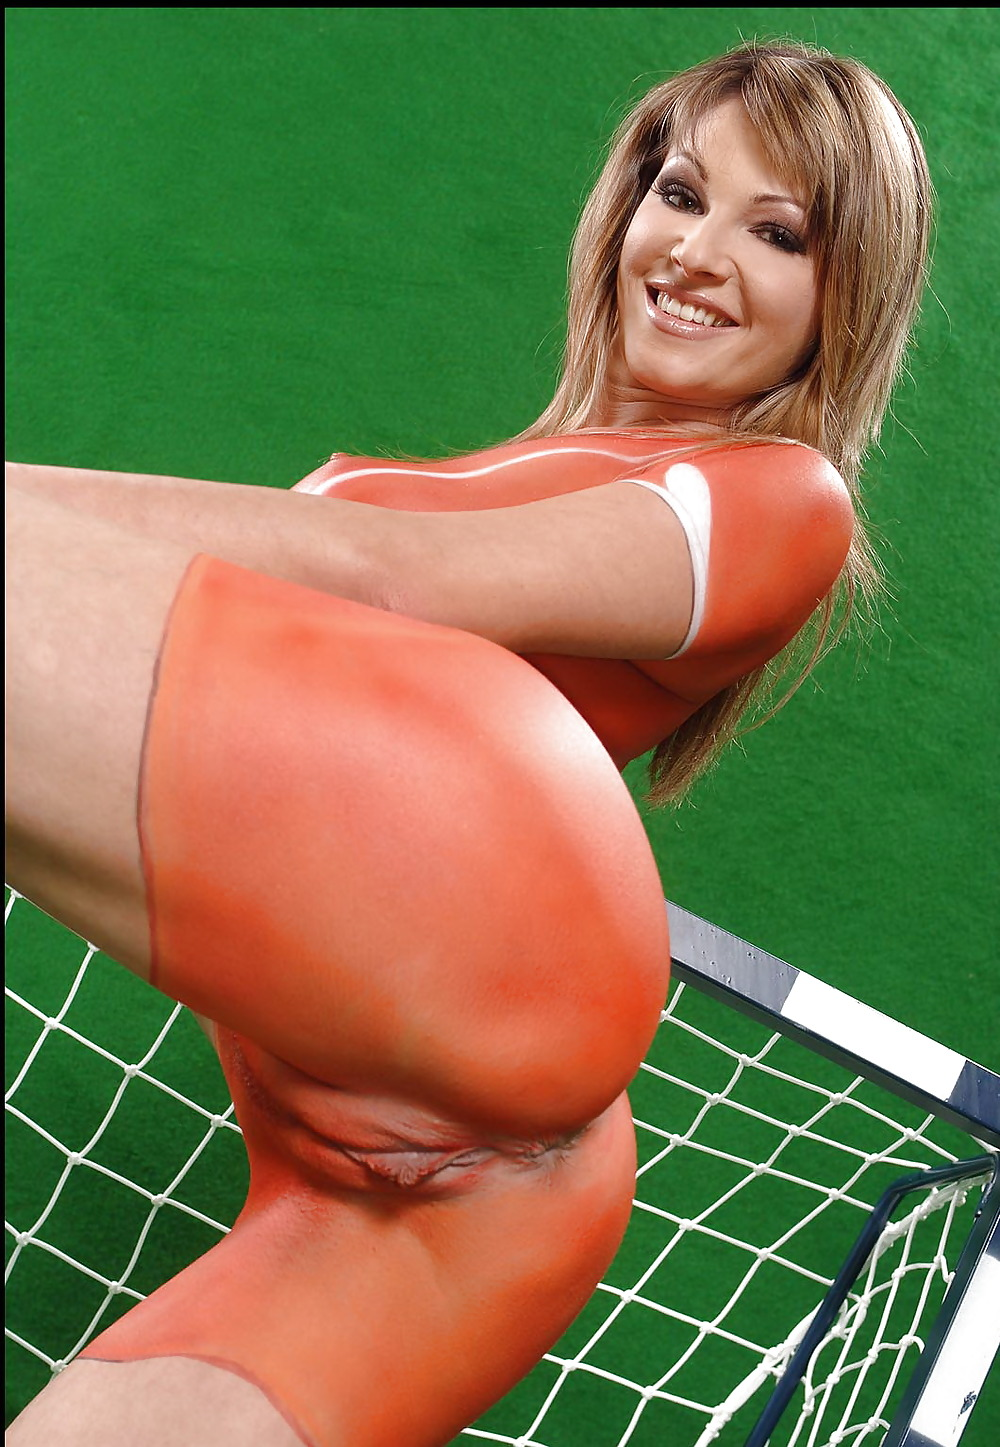 hot-argentinian-soccer-babes-having-sex